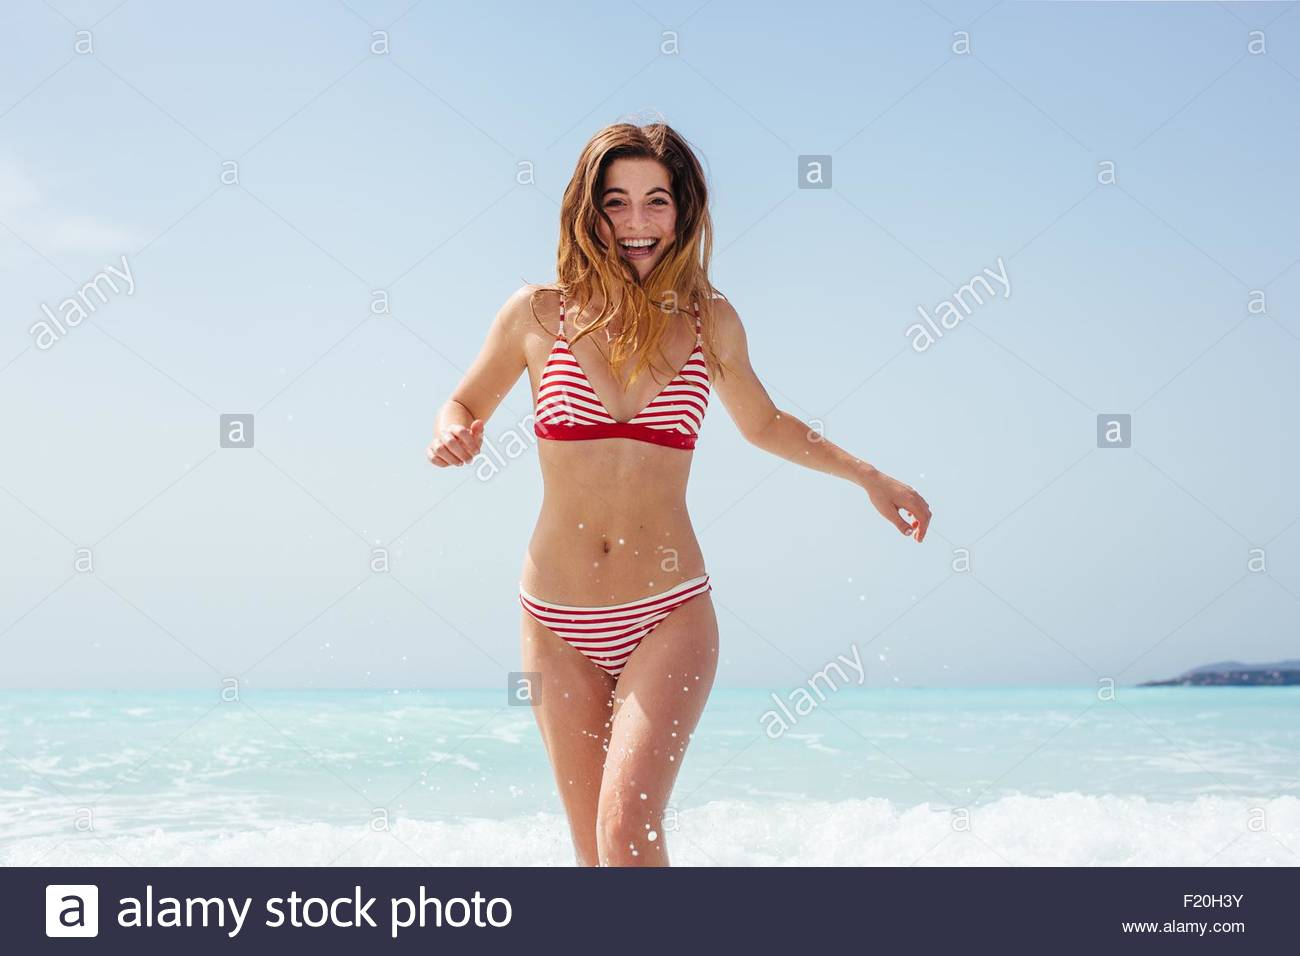 Portrait of young woman wearing bikini running in sea - Stock Image